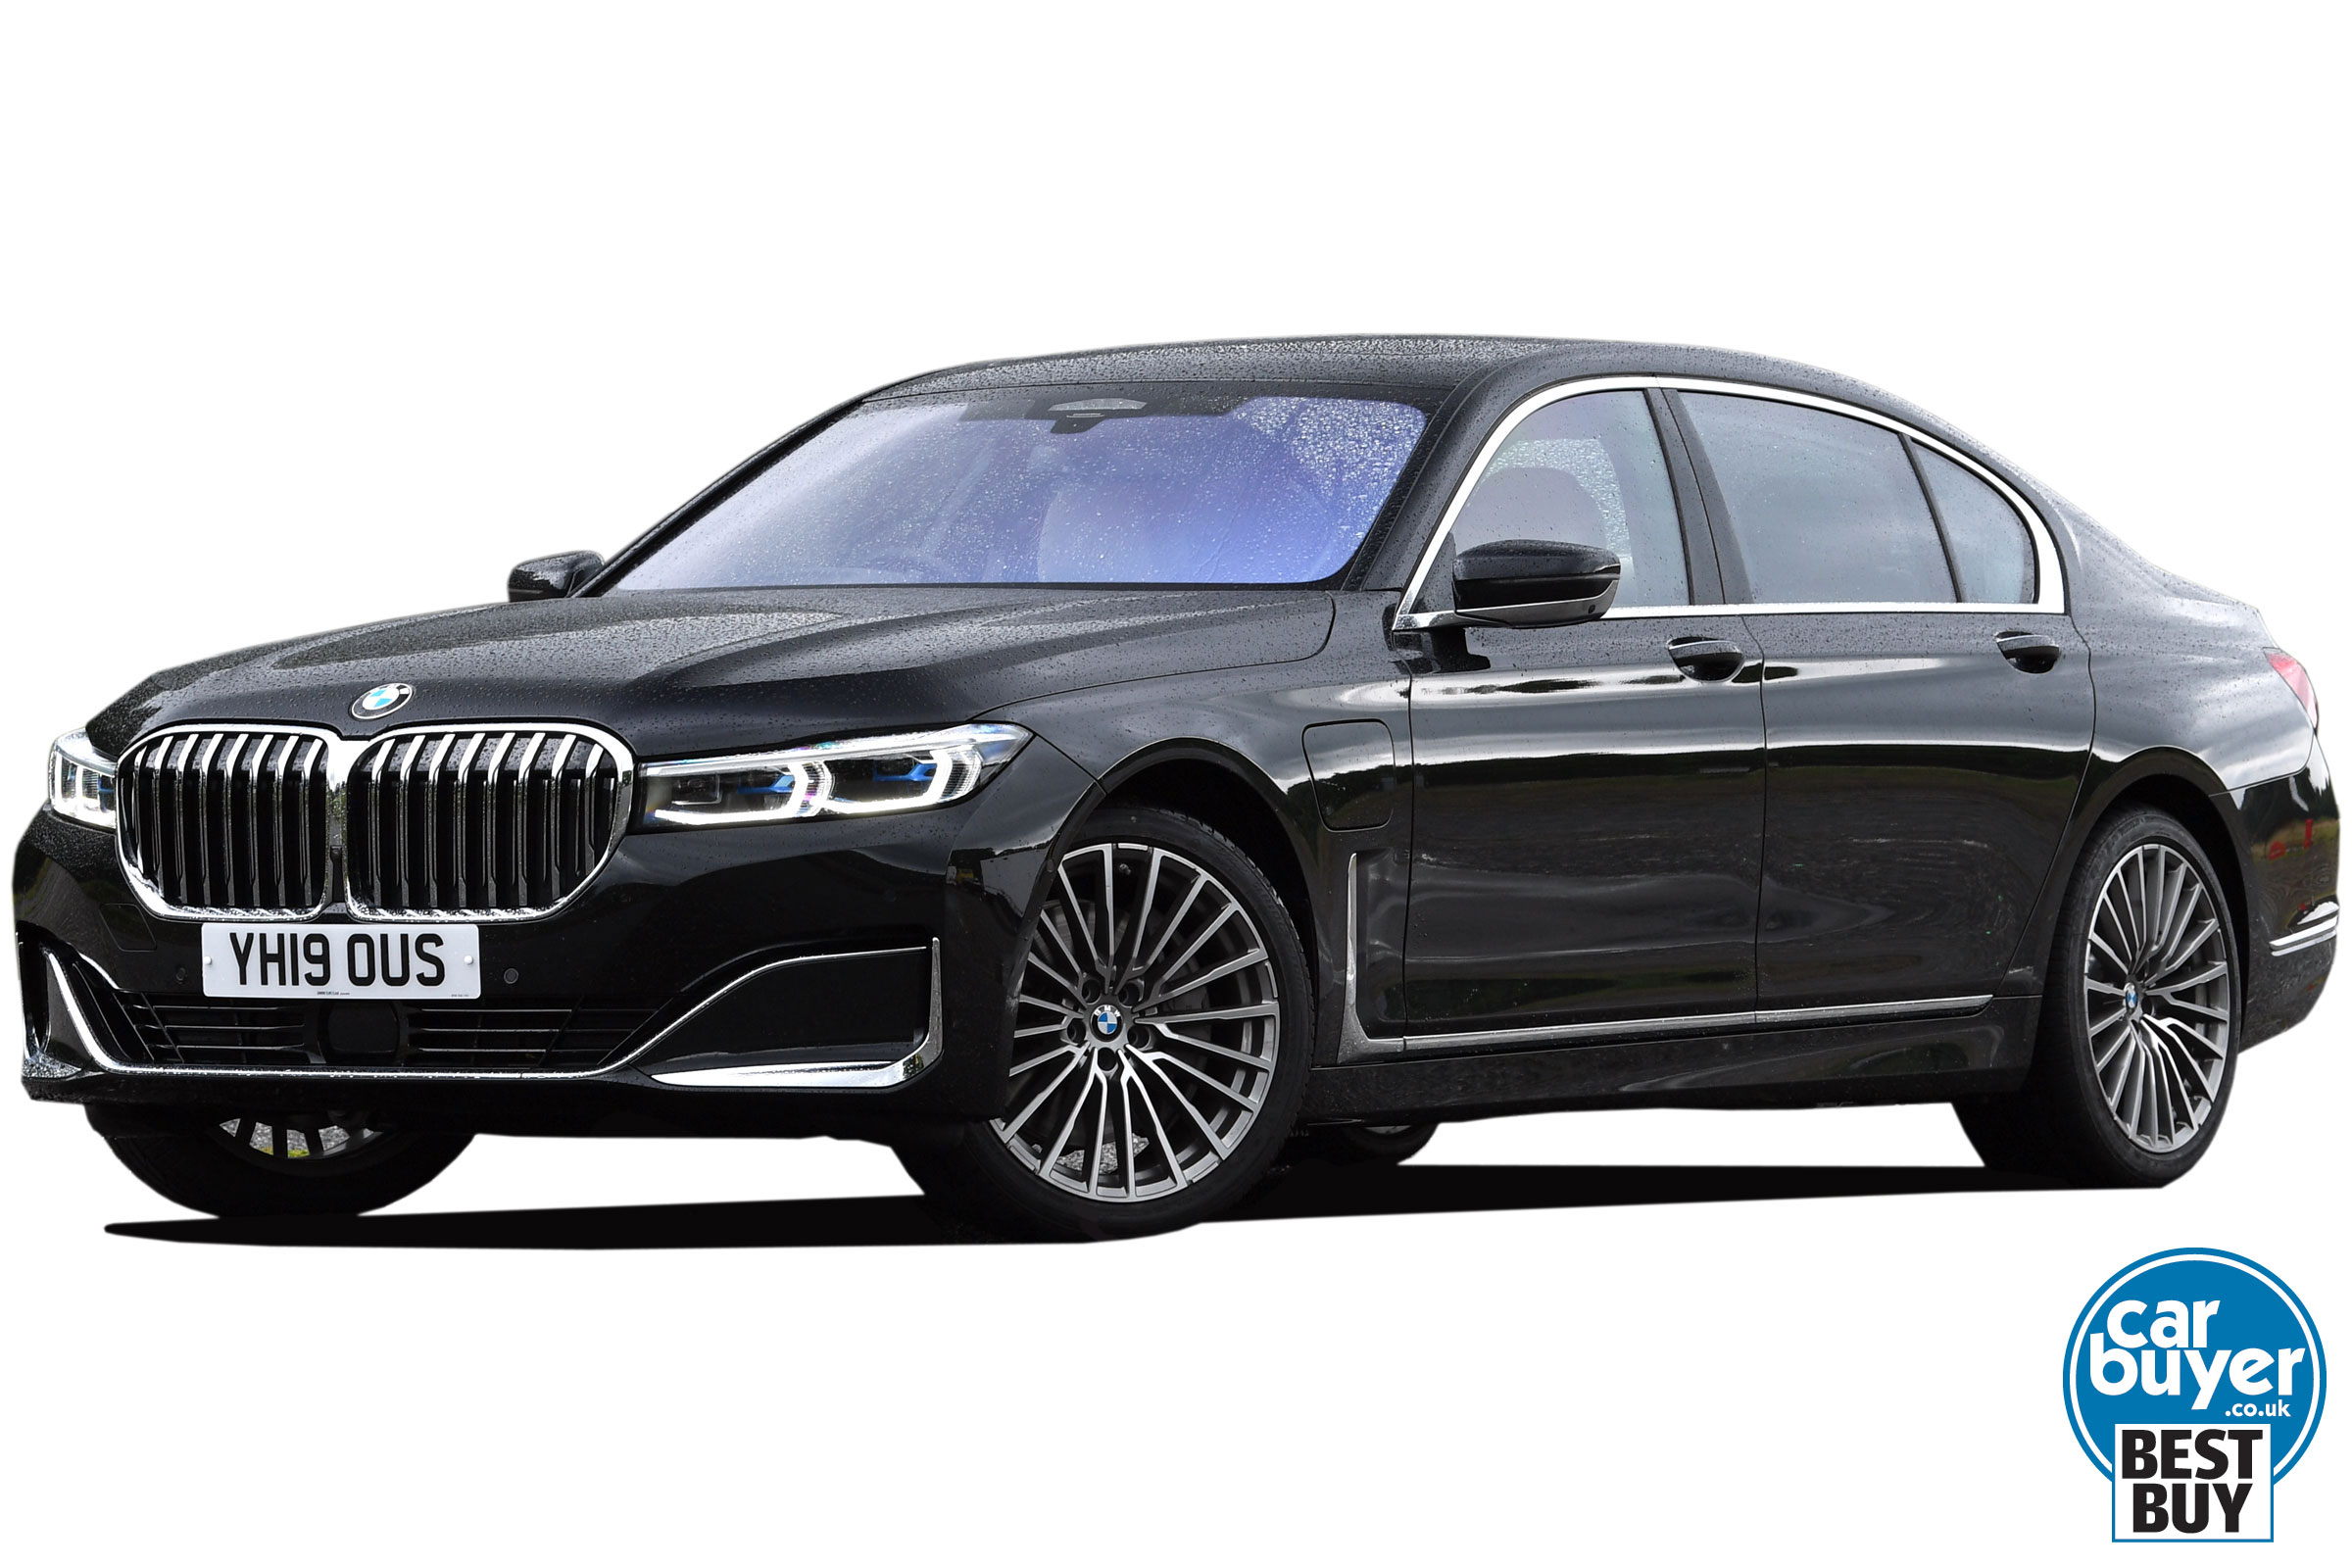 Bmw 7 Series Saloon 2020 Review Carbuyer